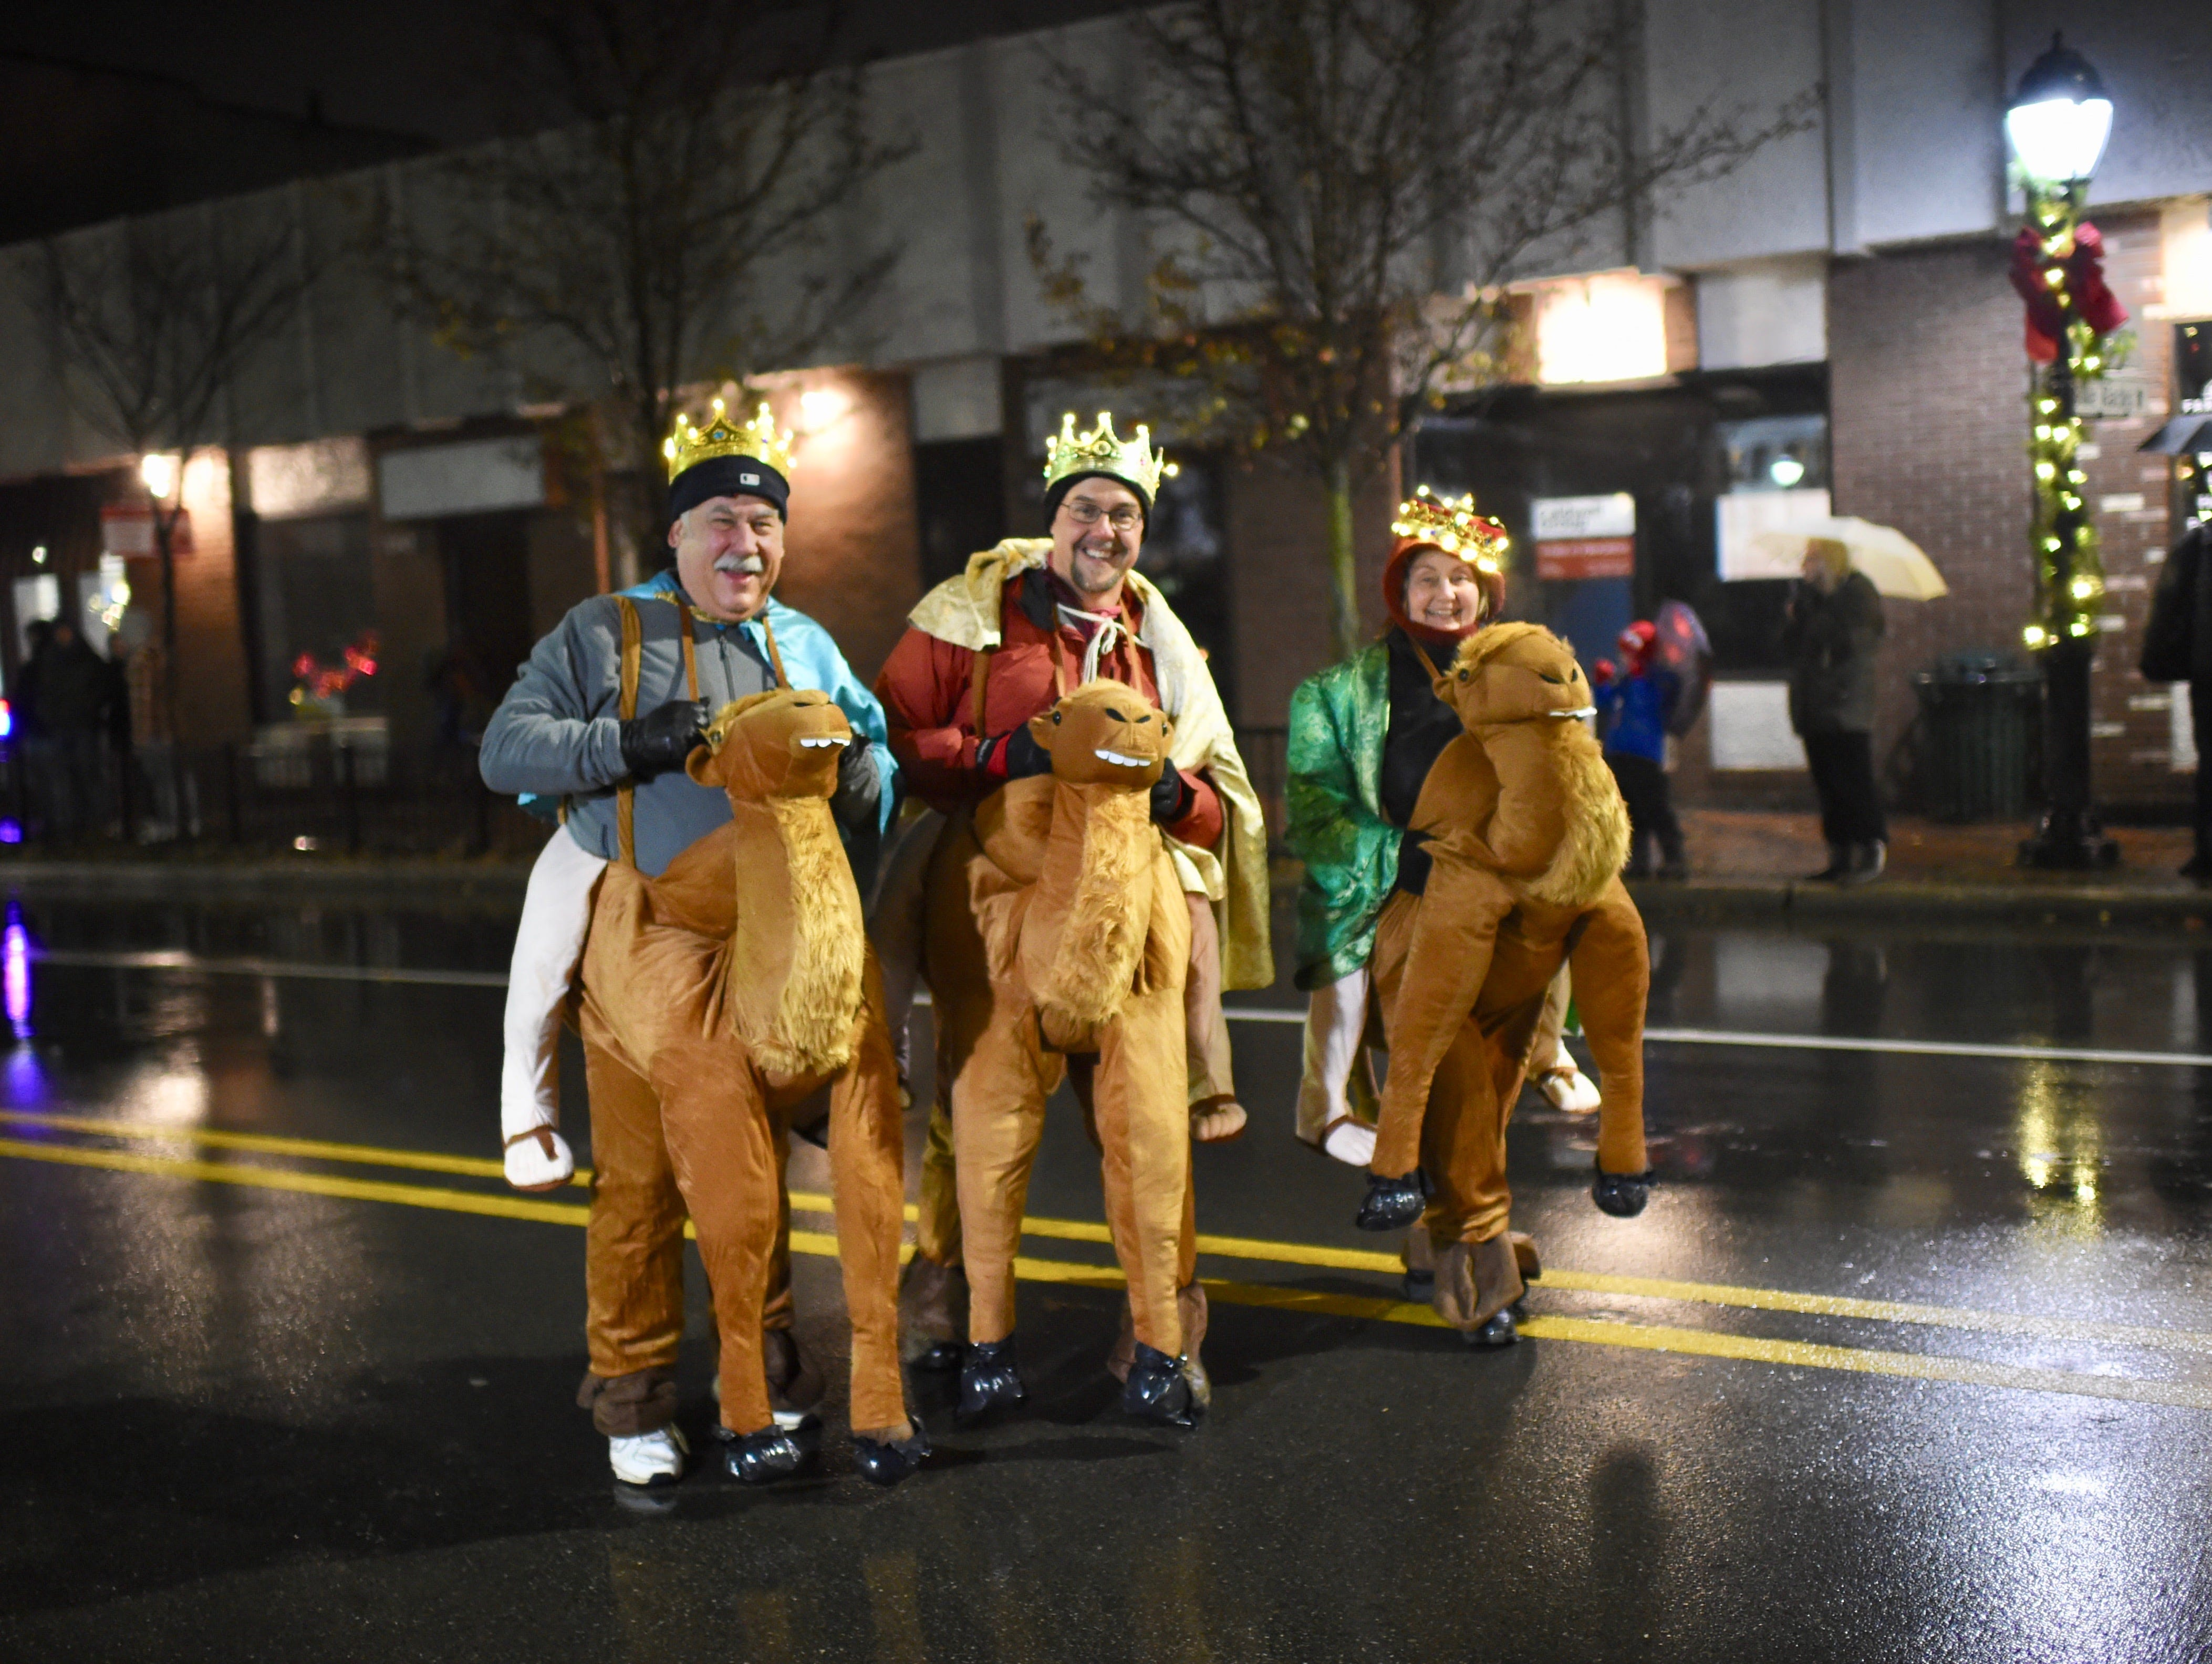 Two wise men and a wise lady take part in the annual parade in Farmington.